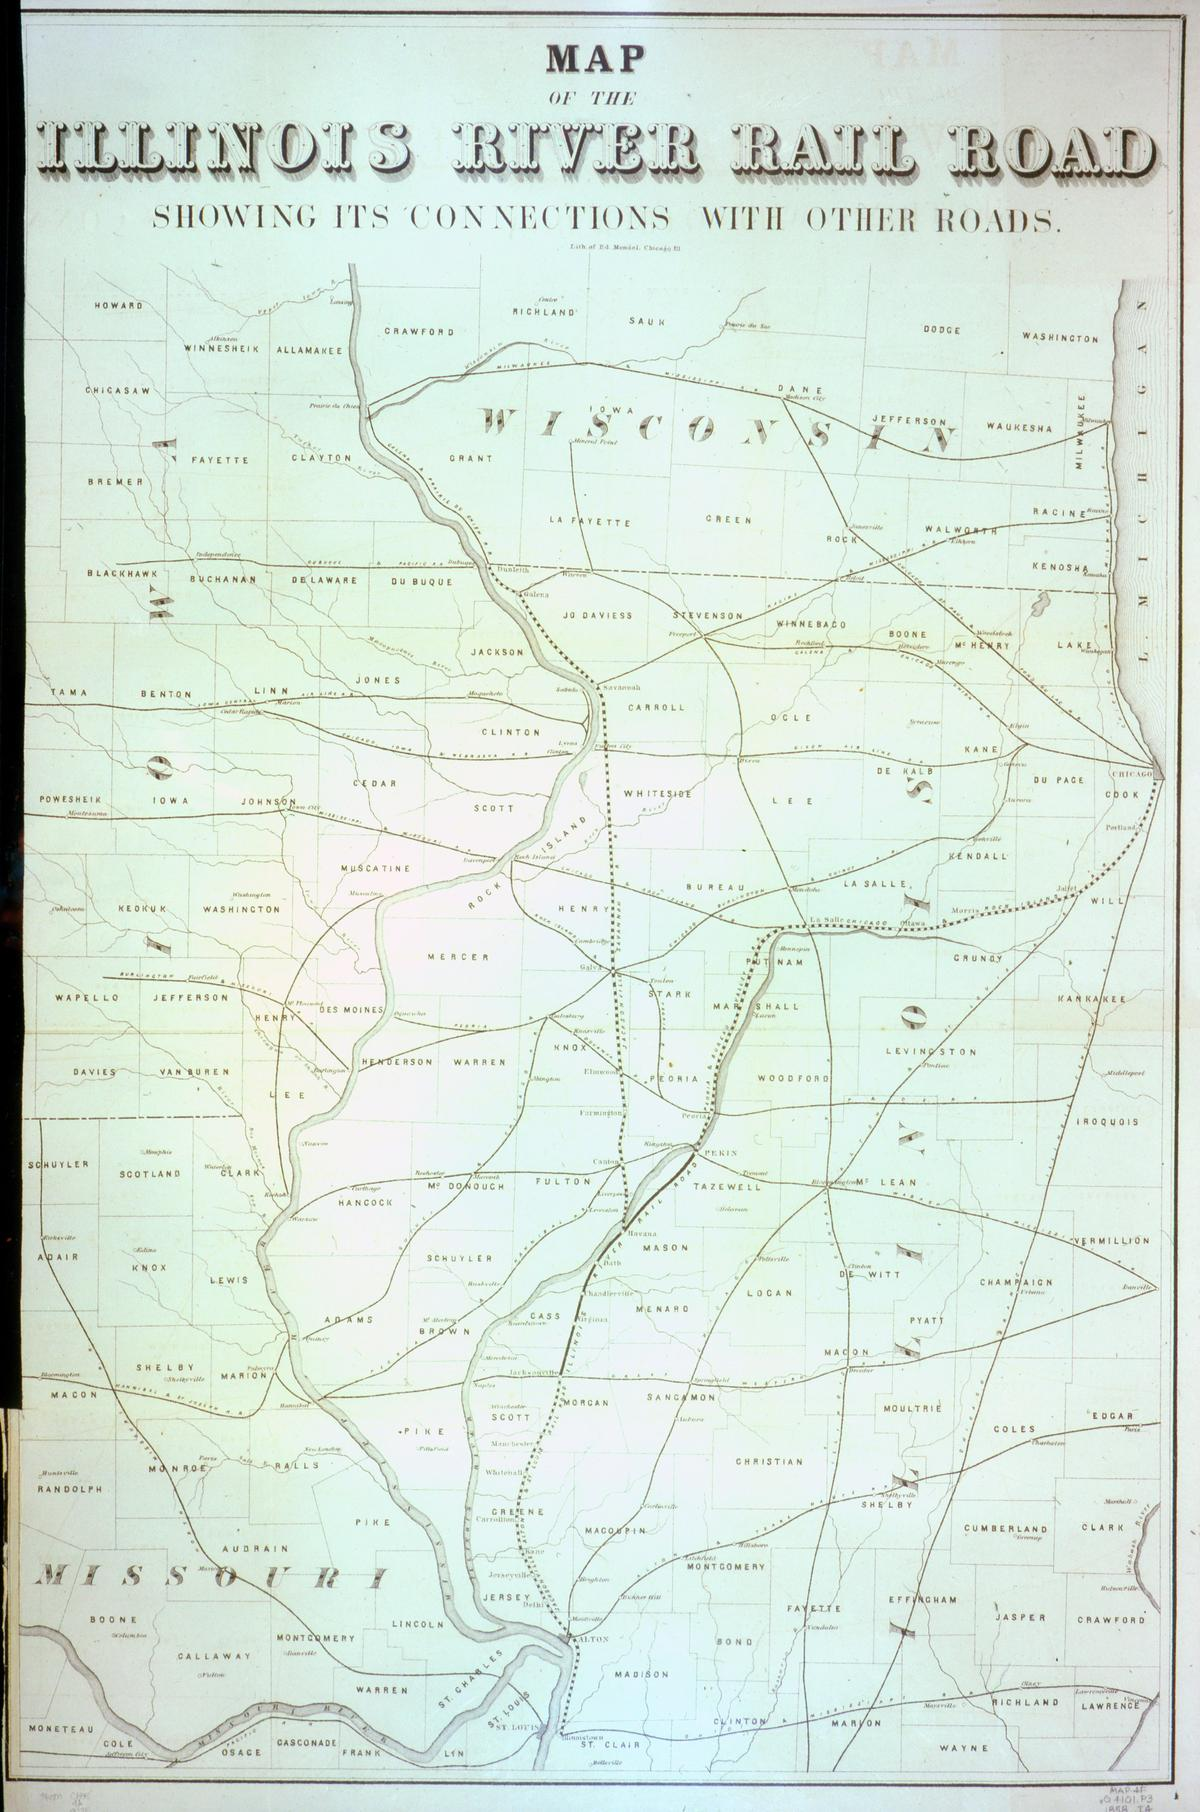 Map of the Illinois River Rail Road